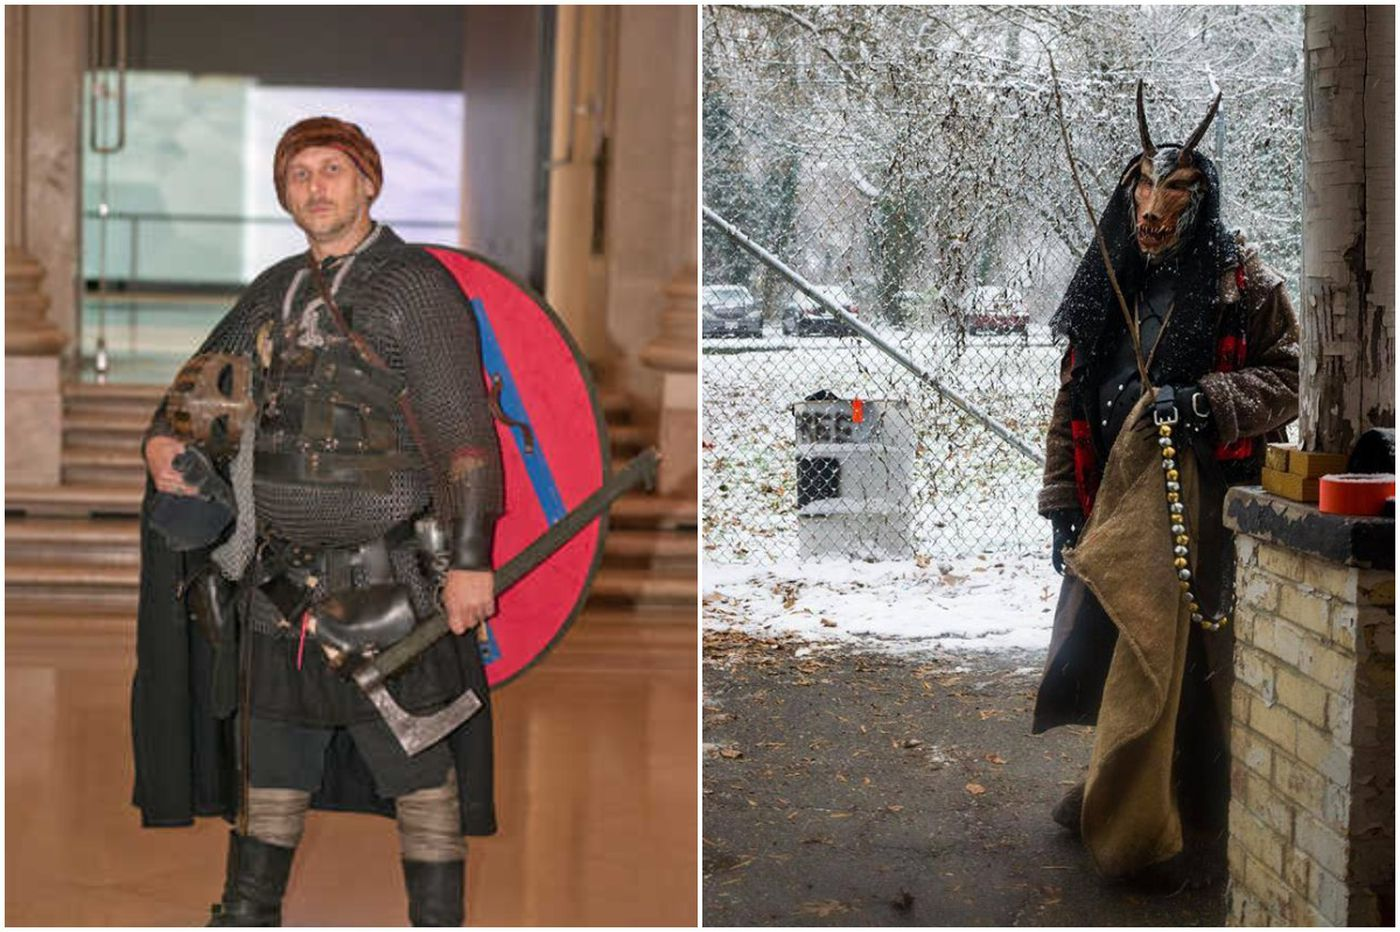 'Erik the Everyday Viking' pillages minds and dresses like Krampus at Christmastime | We the People